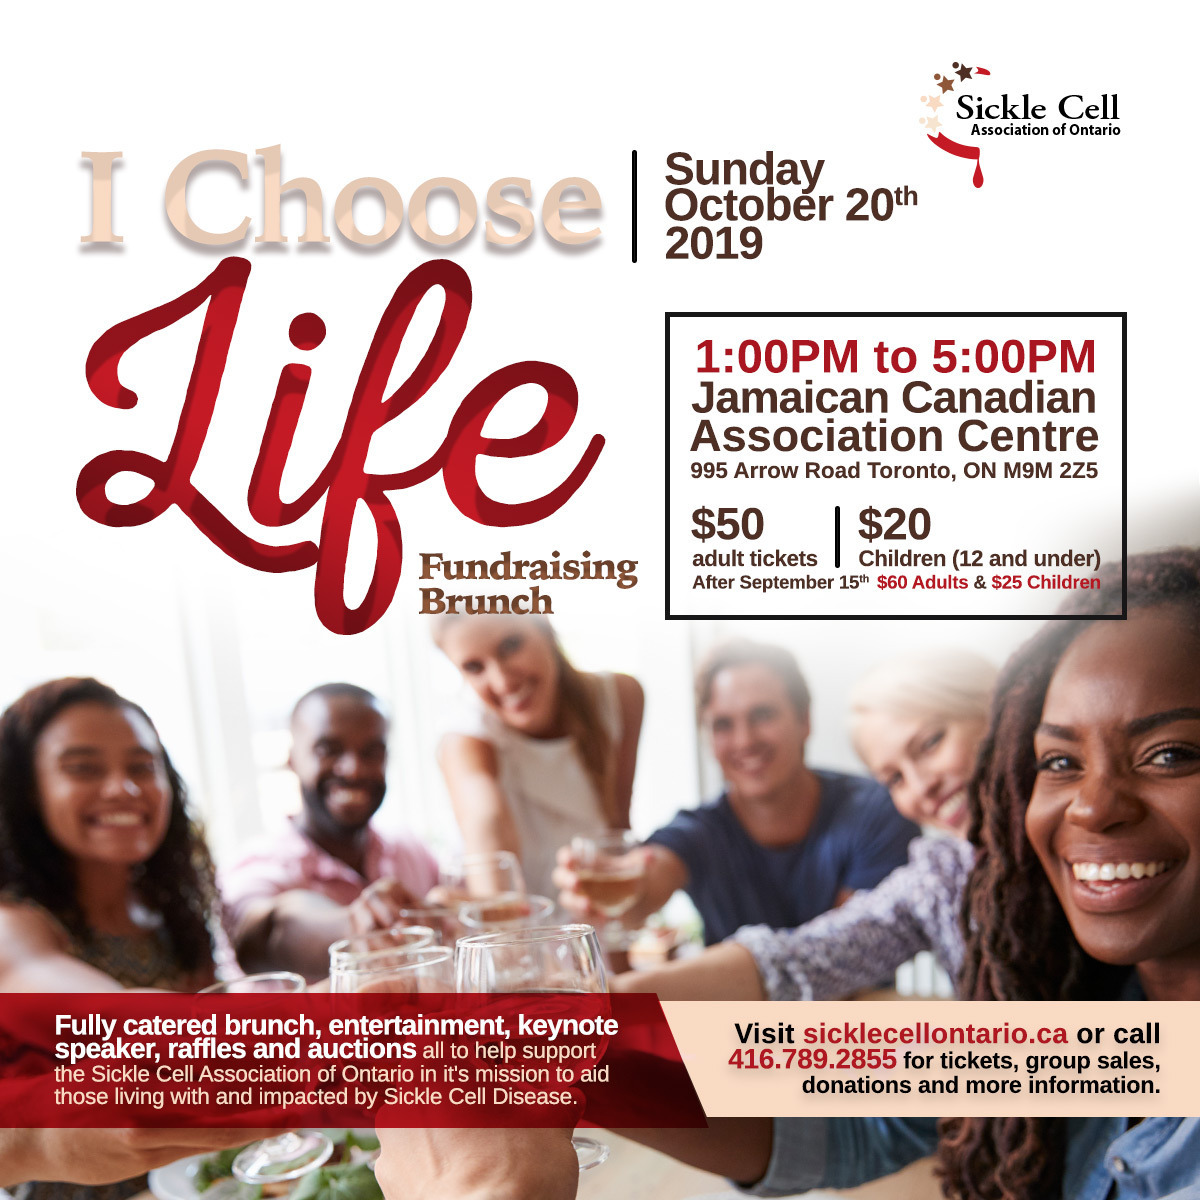 I Choose Life - Fundraising Brunch